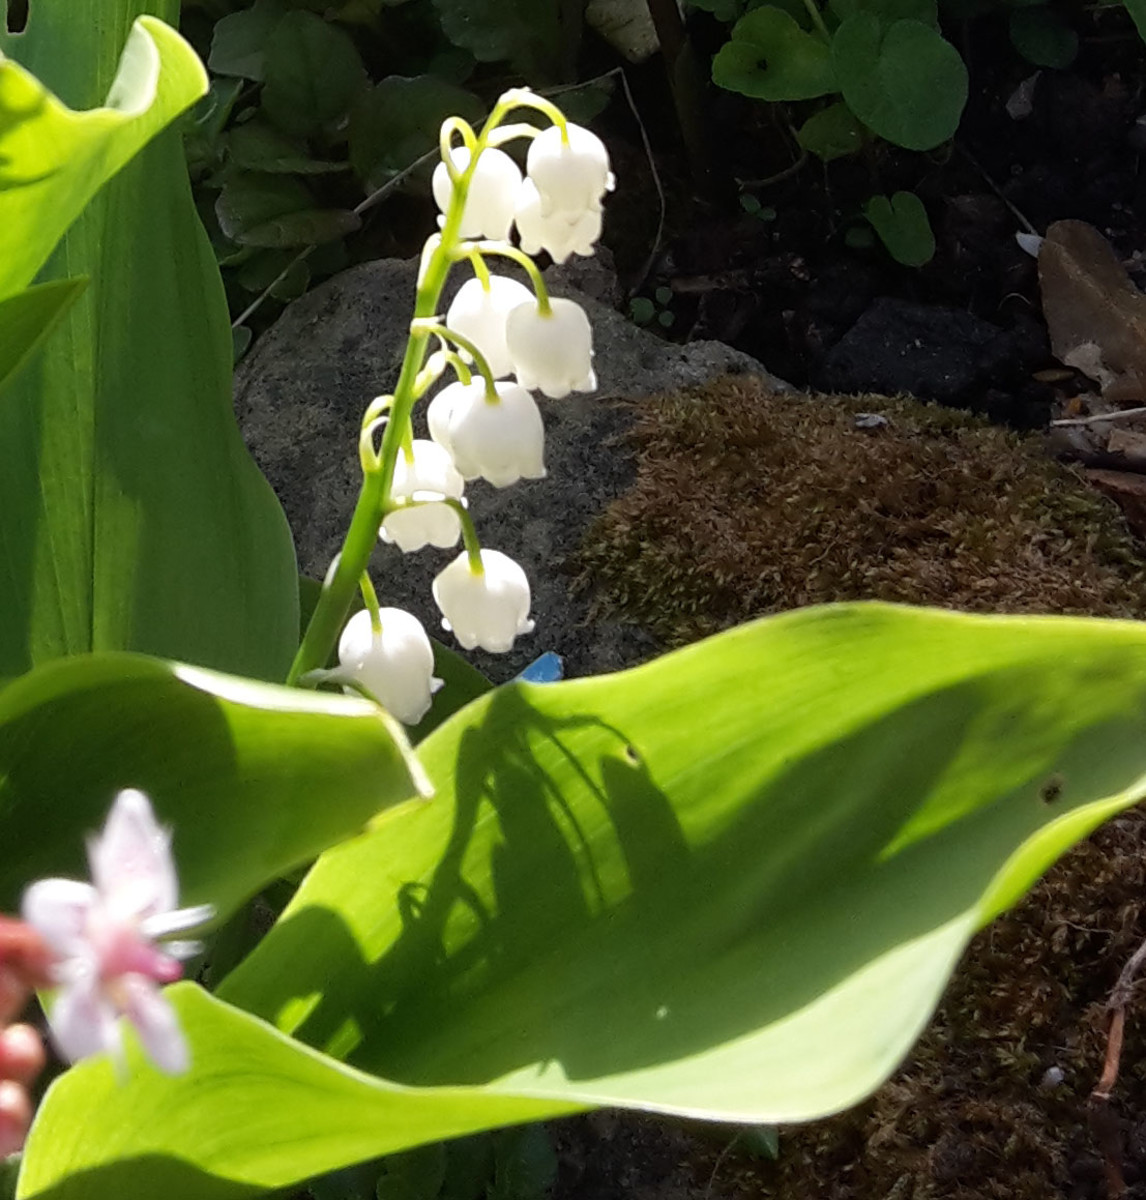 Poisonous Plant: Lily of the Valley (Convallaria majalis)